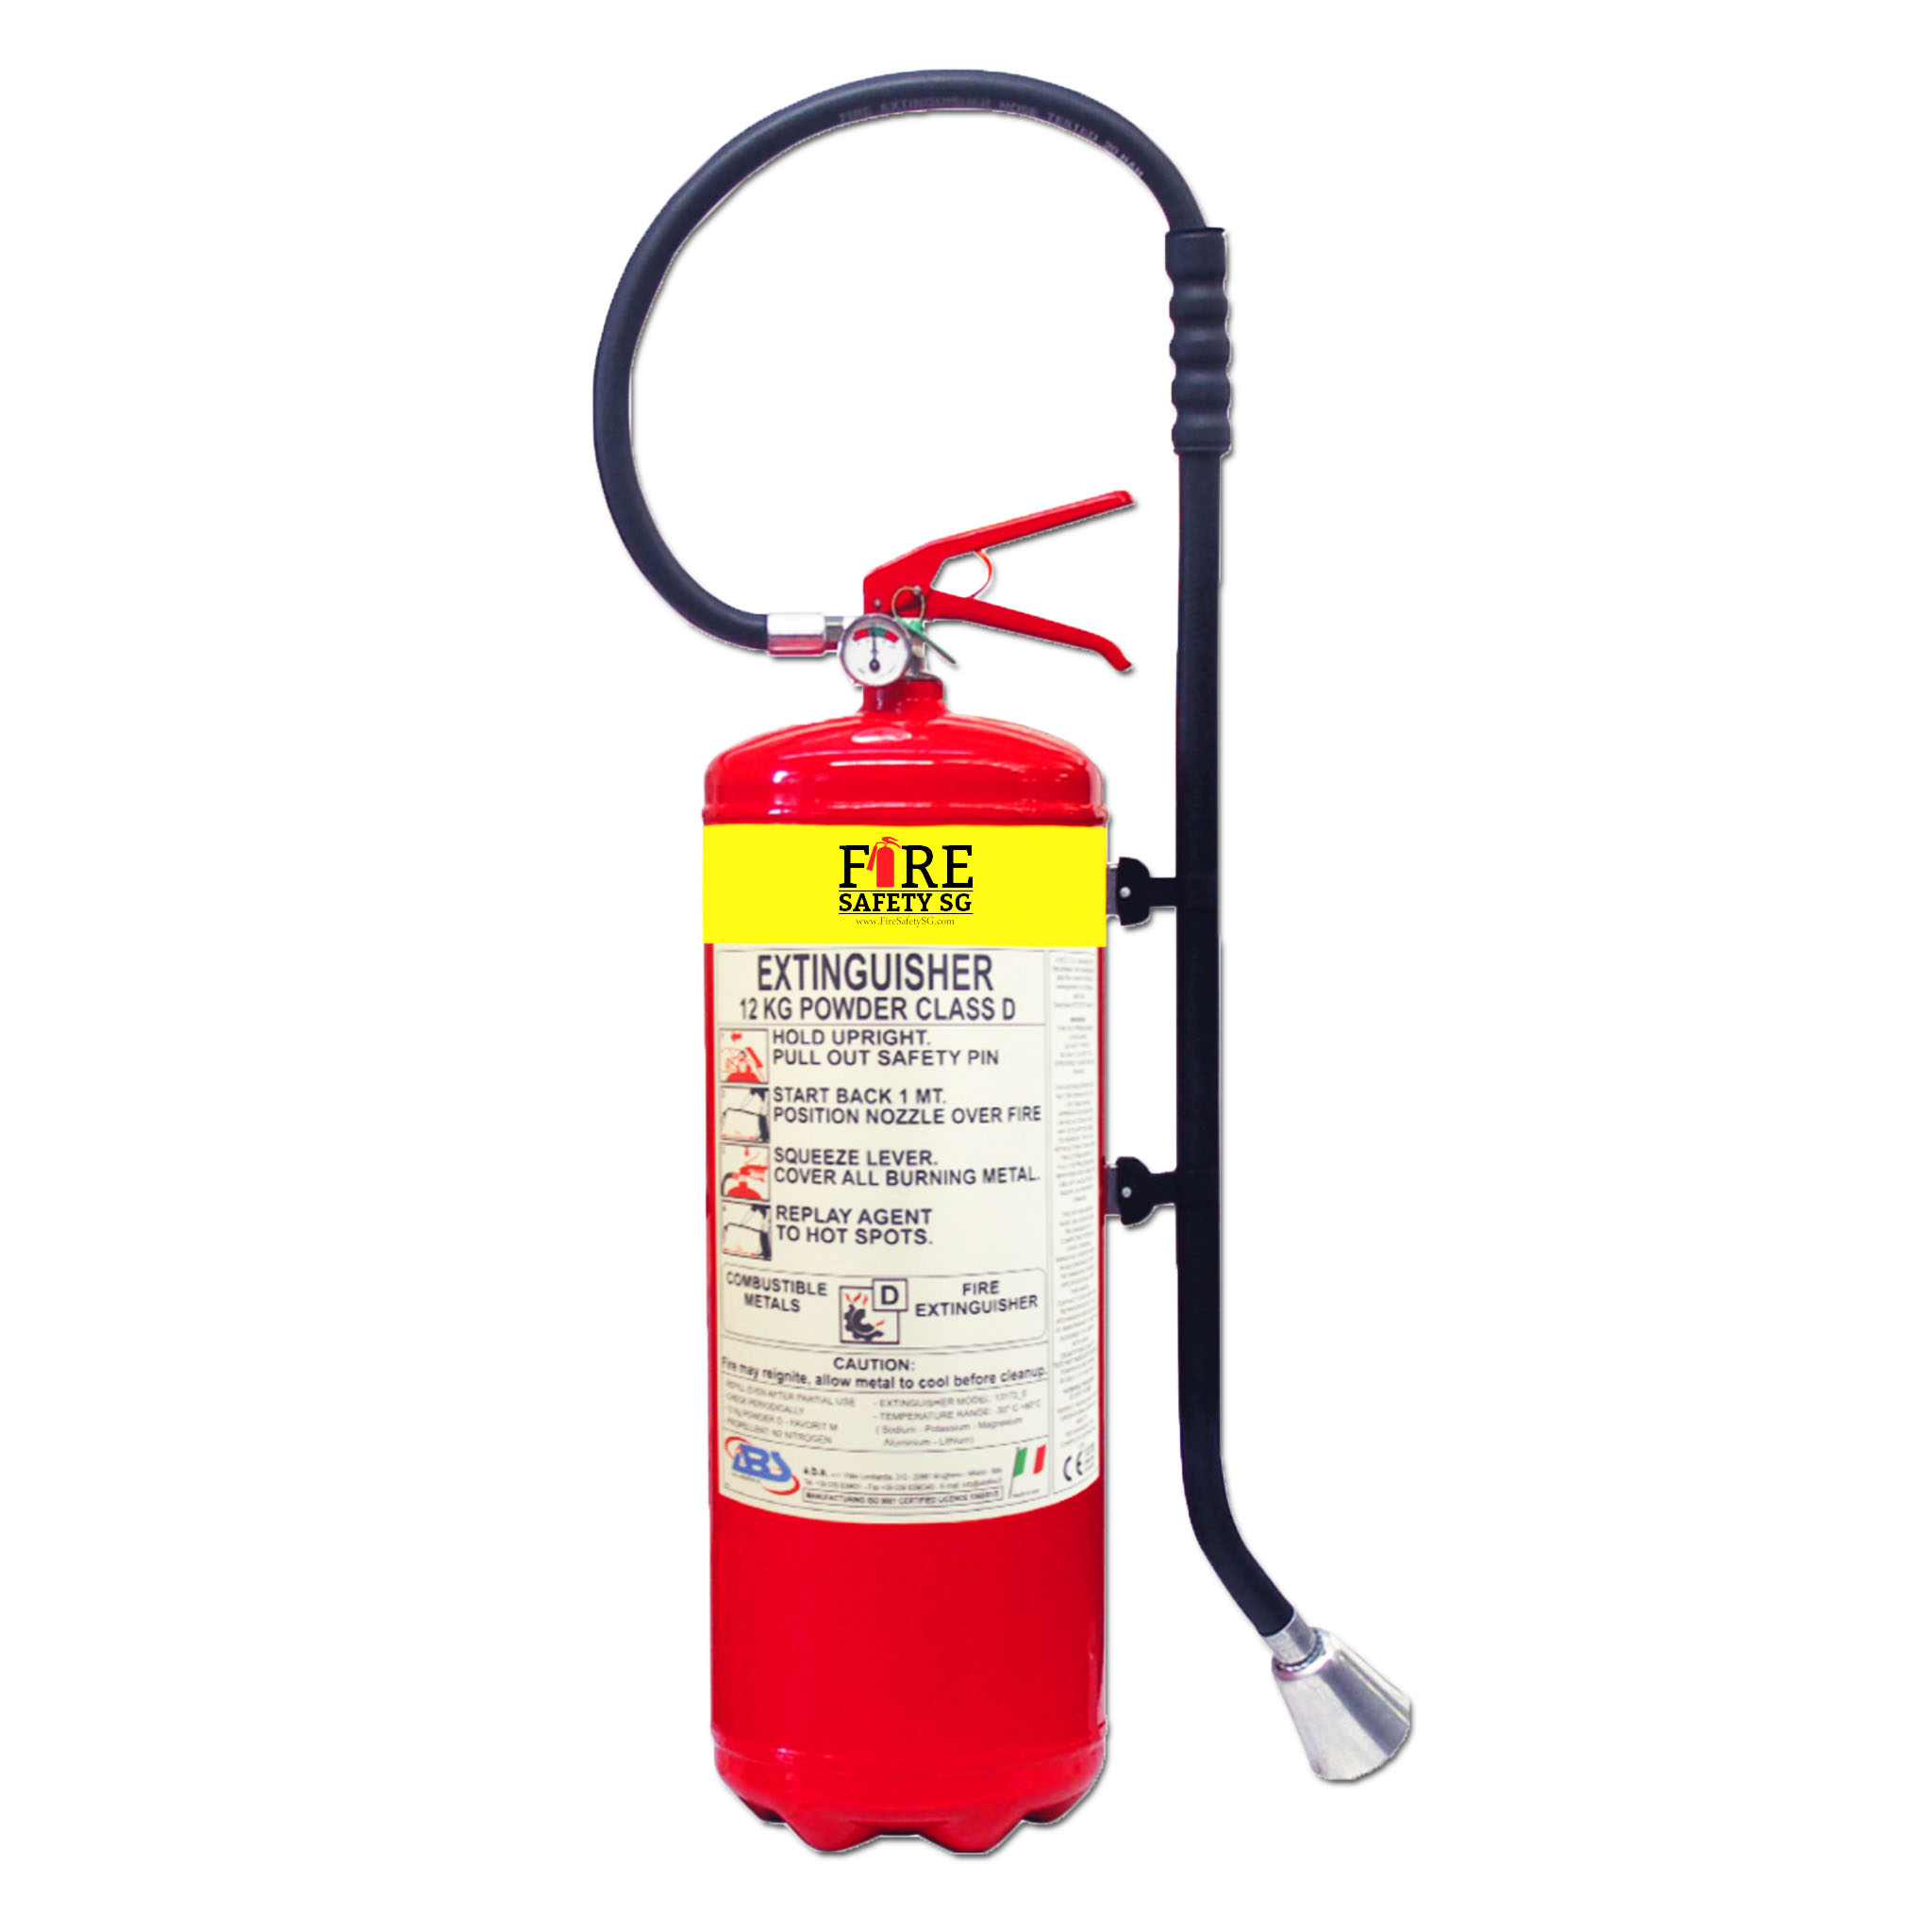 D Fire Extinguisher